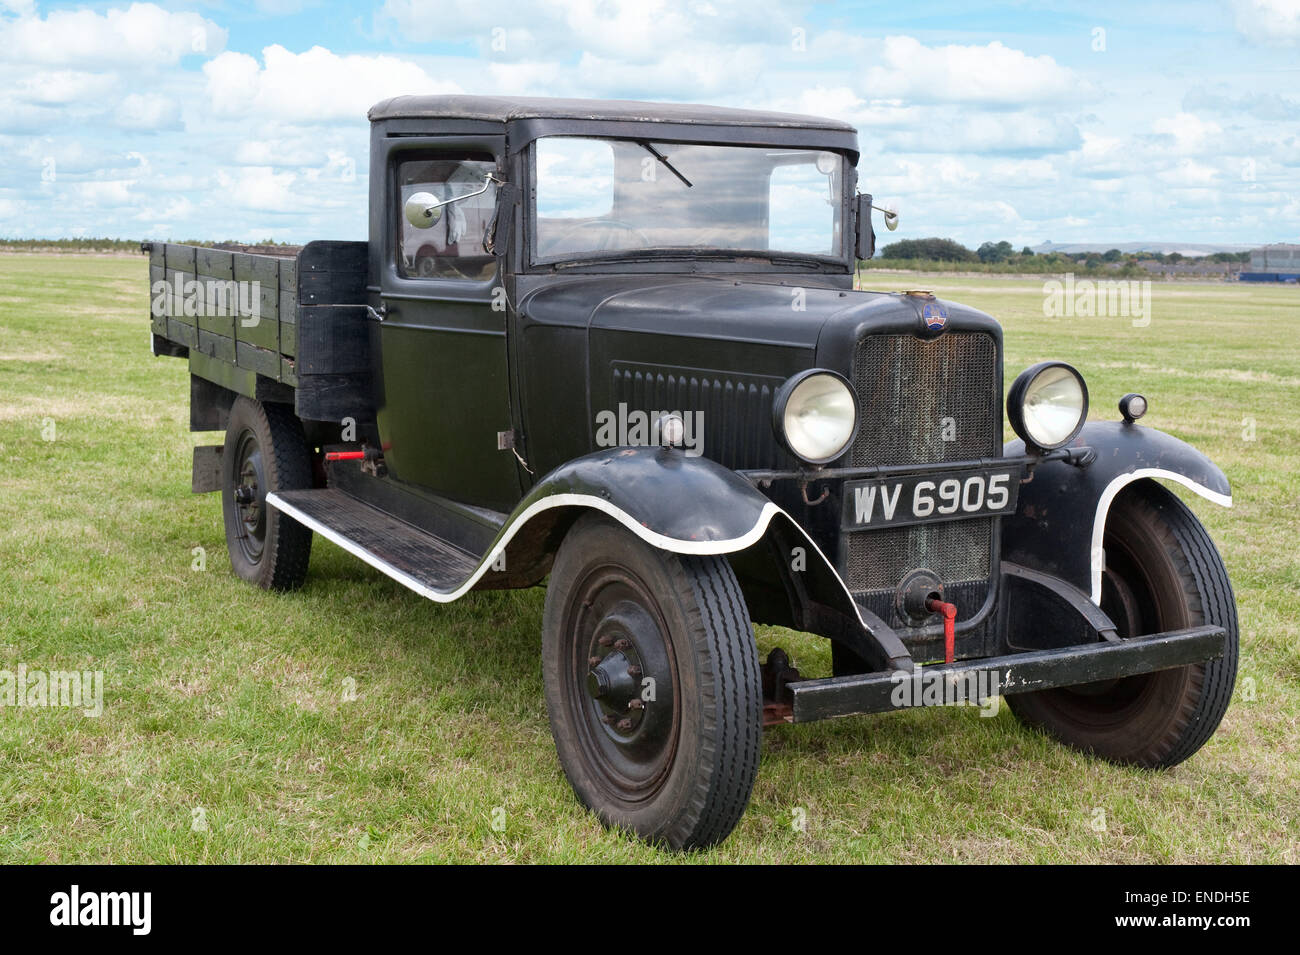 A vintage, Bedford flatbed commercial vehicle - Stock Image